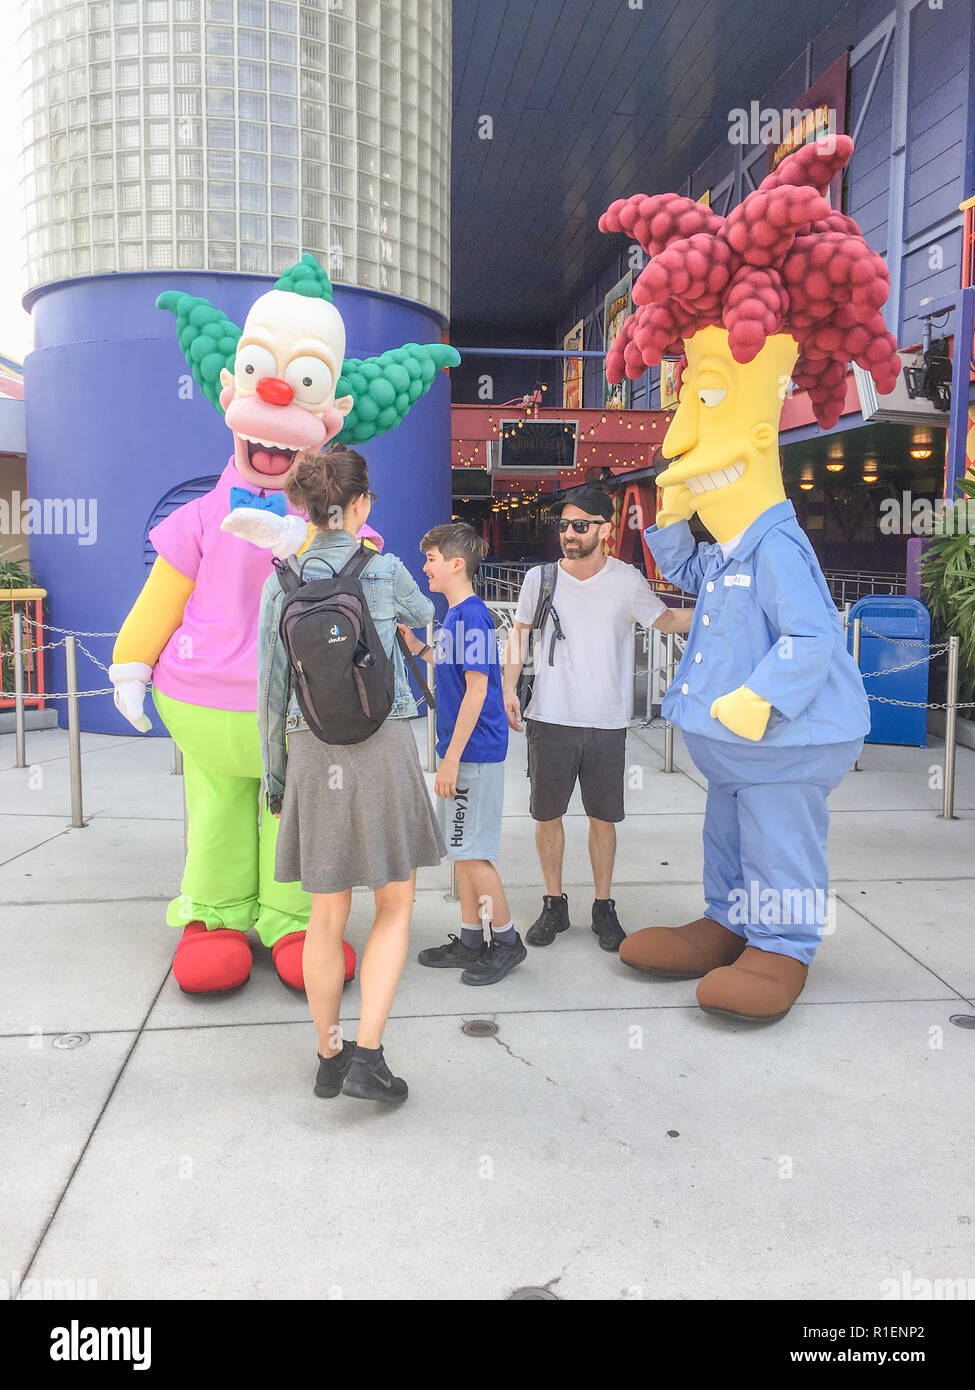 APRIL 25, 2018 - ORLANDO, FLORIDA: FAMILY POSES WITH SIMPSON CHARACTERS AT UNIVERSAL STUDIOS. Stock Photo